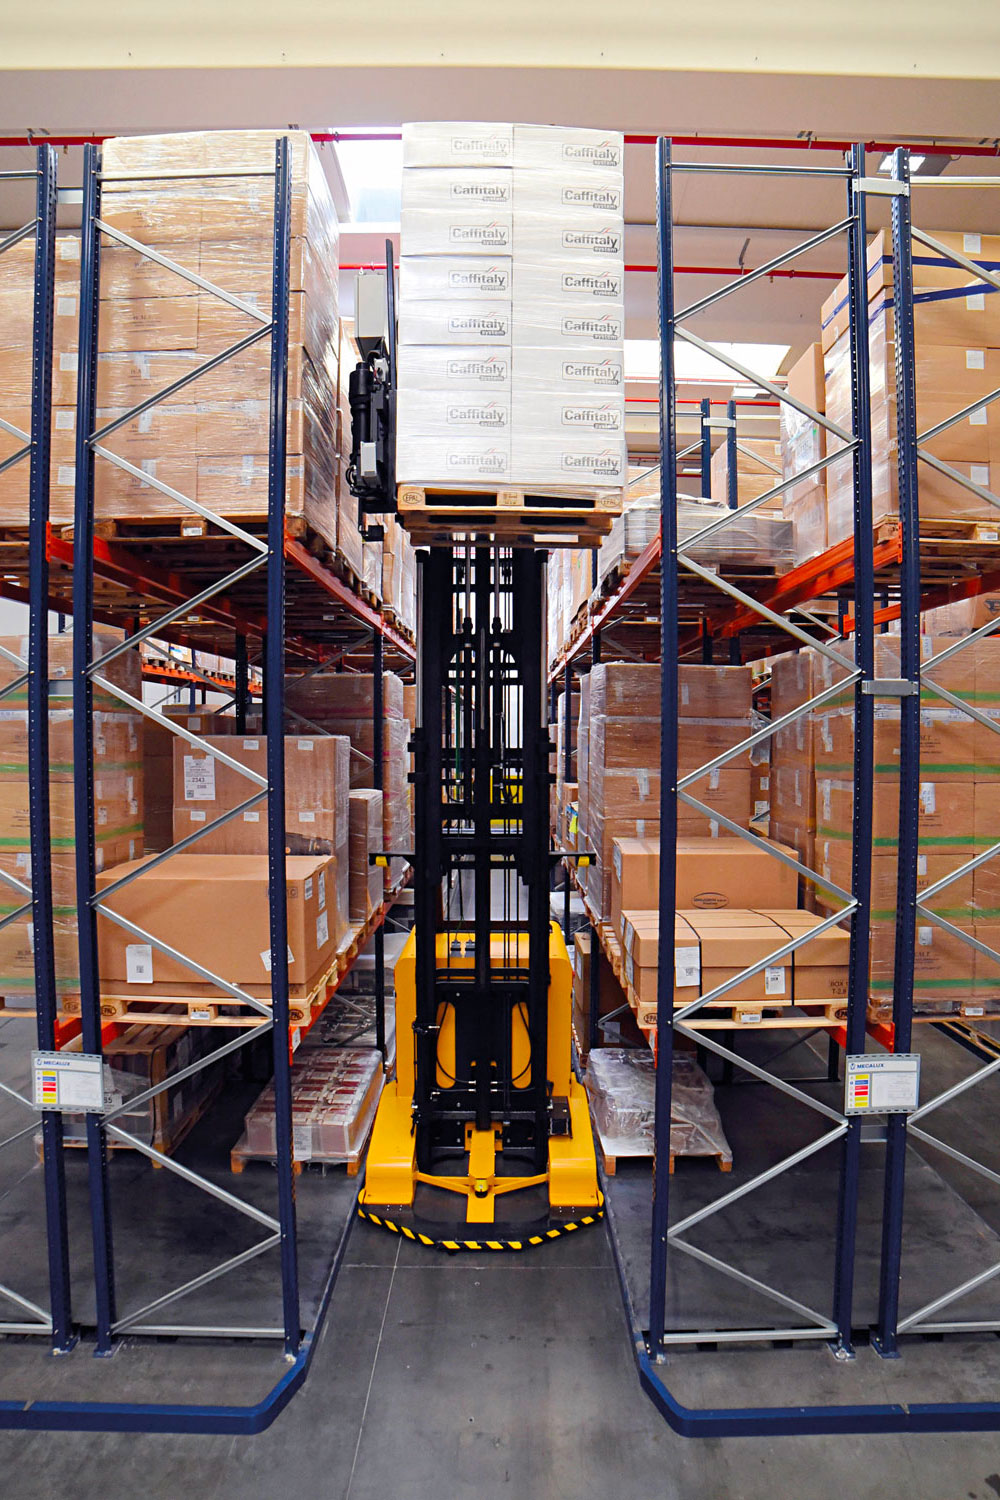 Handled material are loaded/de-loaded in any type racking structure: Conventional, Drive in, Live storage by means of roller track (FIFO first-in/first-out or LIFO last-in/first-out). Mobile structural compact pallet rack.